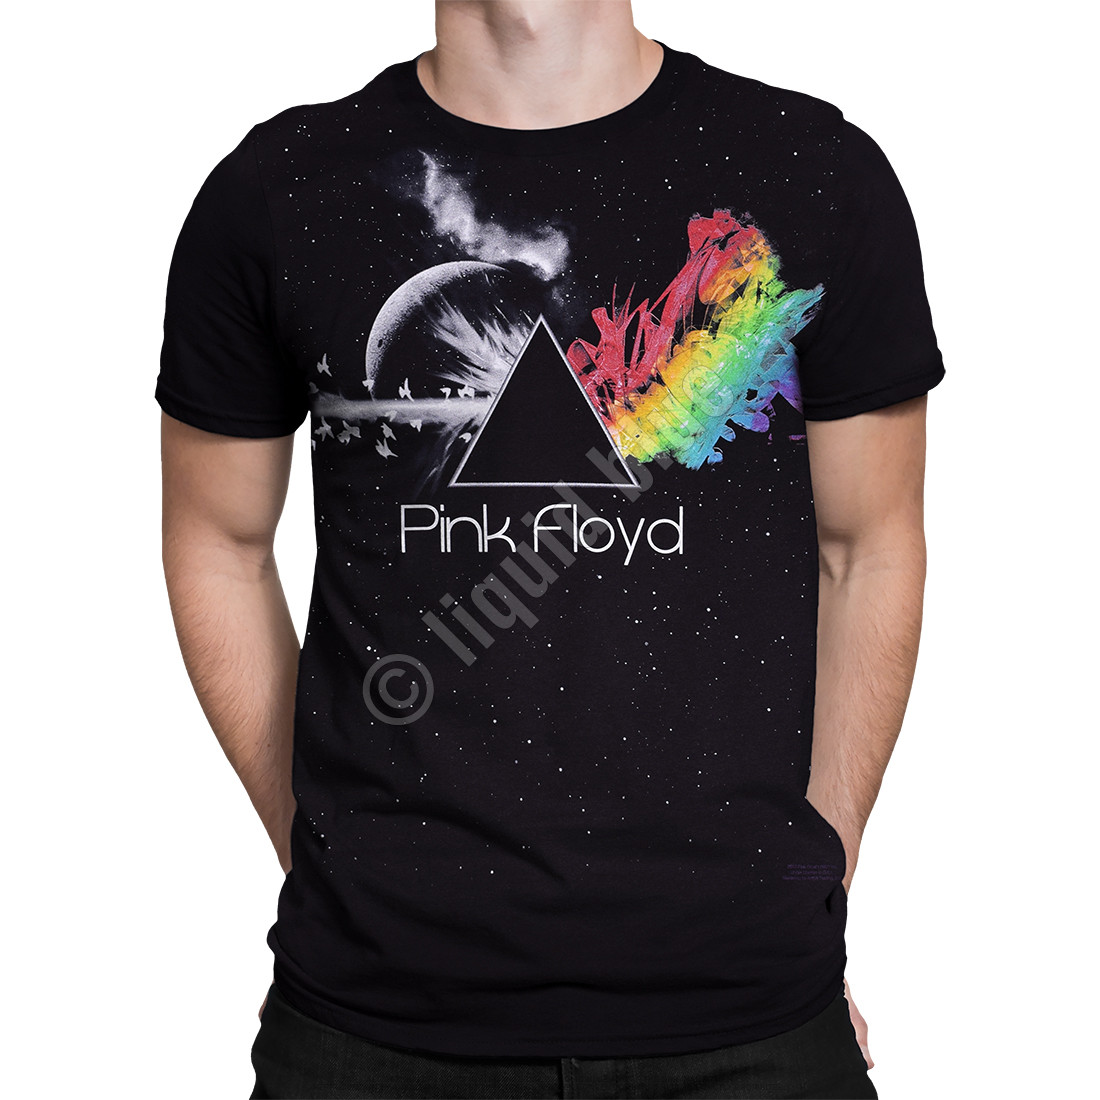 pink floyd any colour you like black athletic t shirt tee. Black Bedroom Furniture Sets. Home Design Ideas